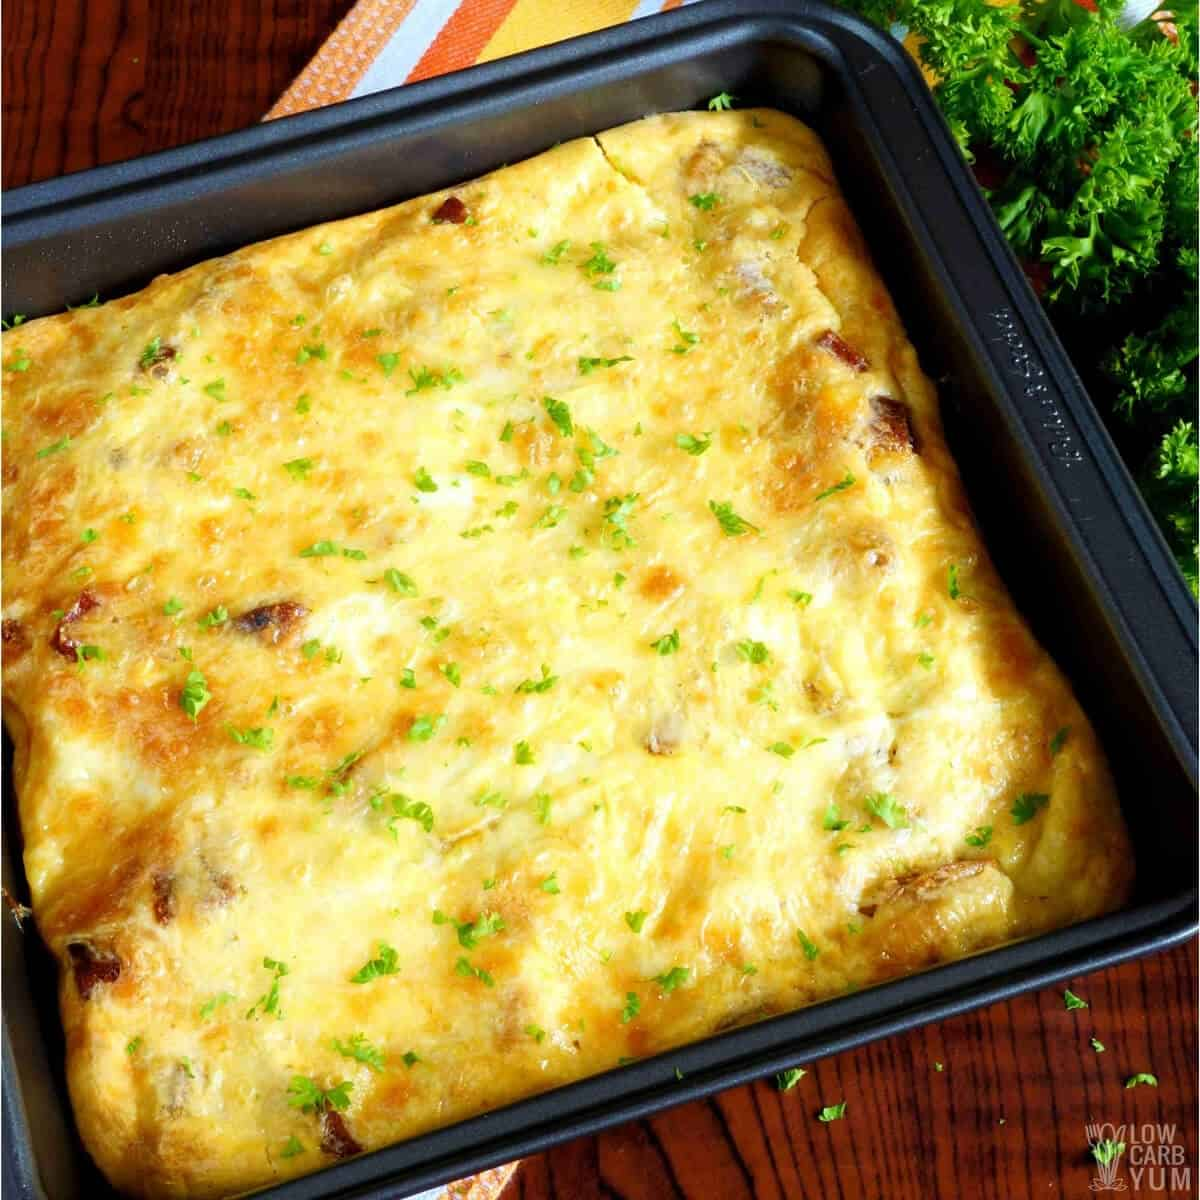 baked egg casserole in pan